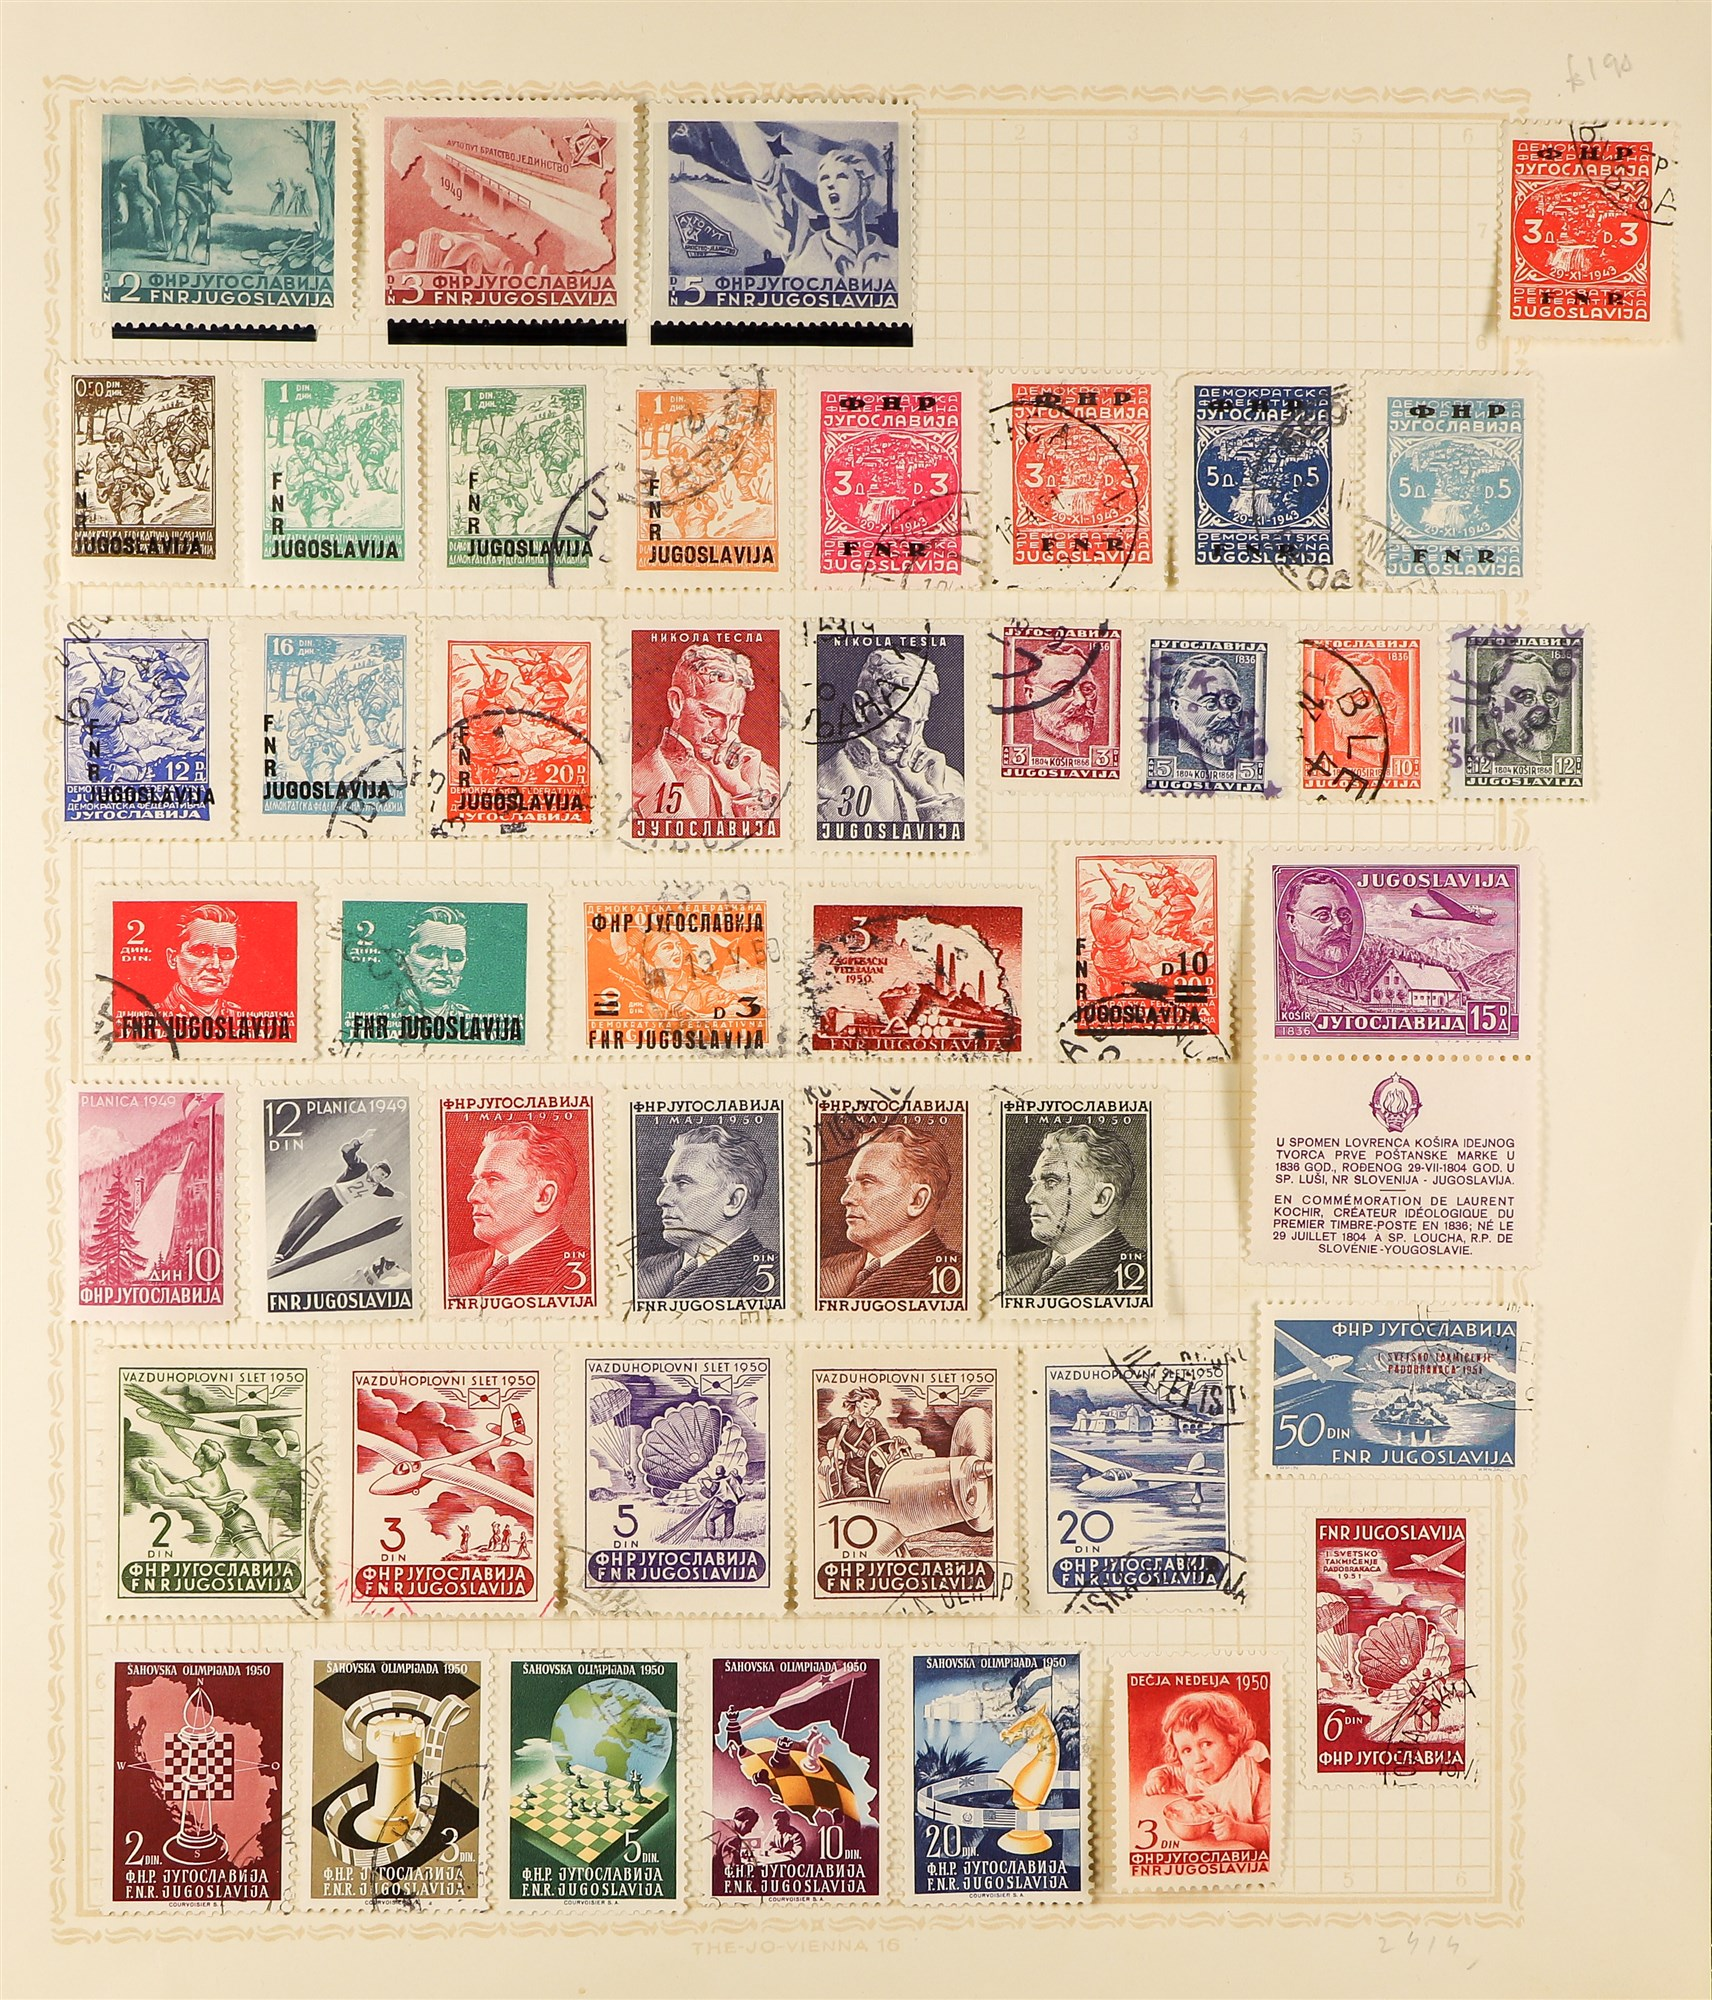 YUGOSLAVIA 1919-80 COLLECTION of mint and used issues in an album, incl. extensive Chainbreakers, - Image 15 of 17